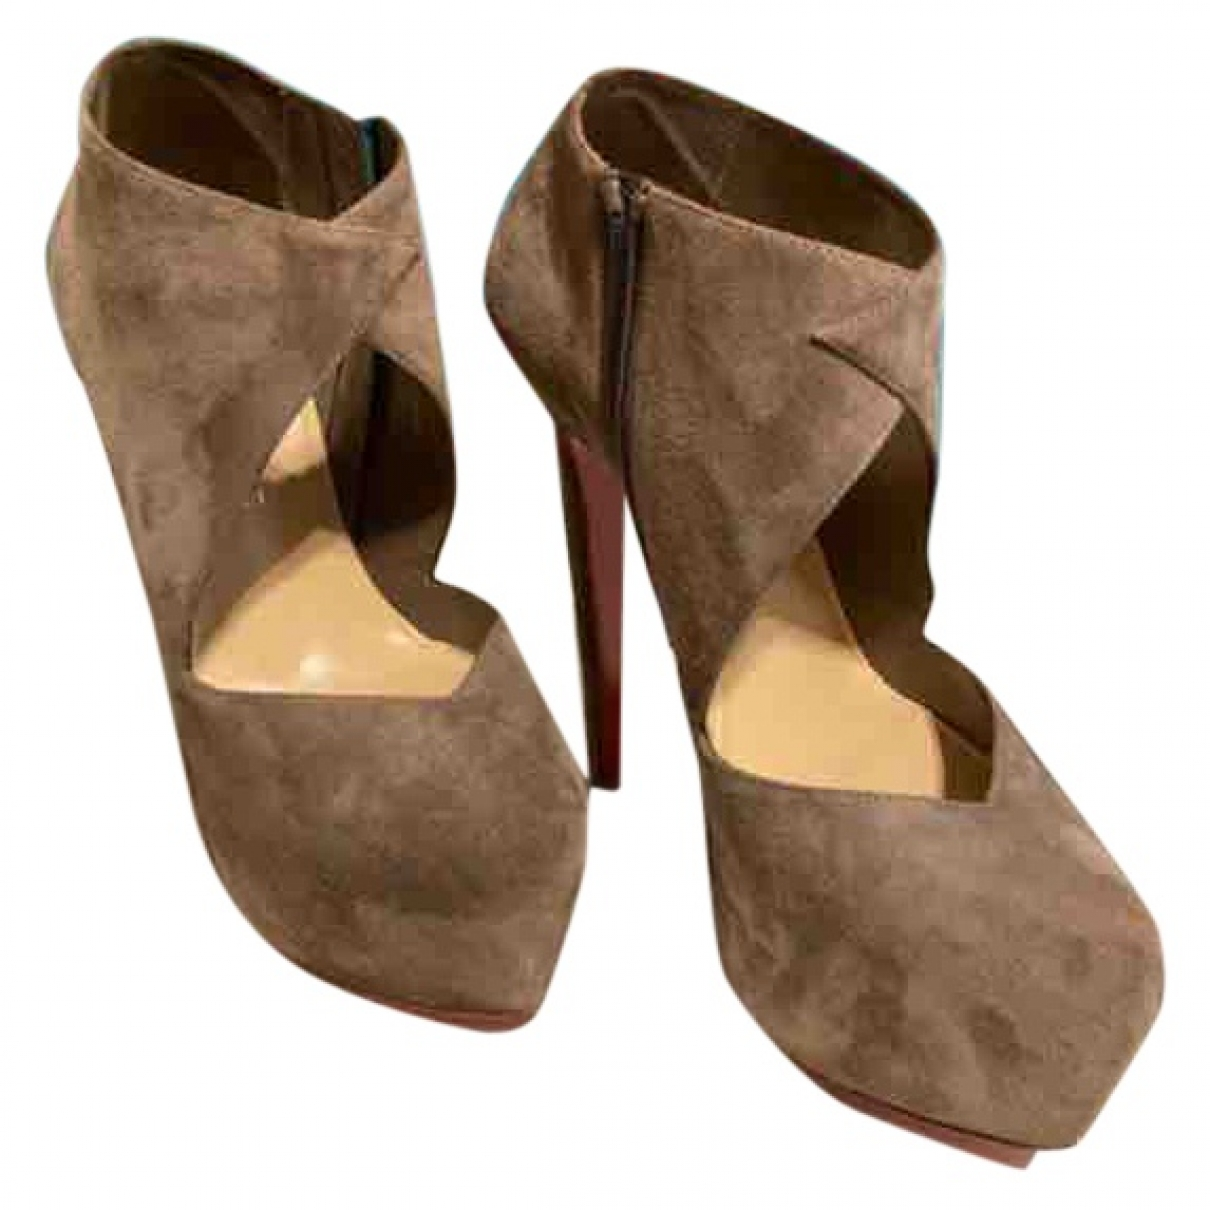 Christian Louboutin \N Beige Suede Ankle boots for Women 37 EU